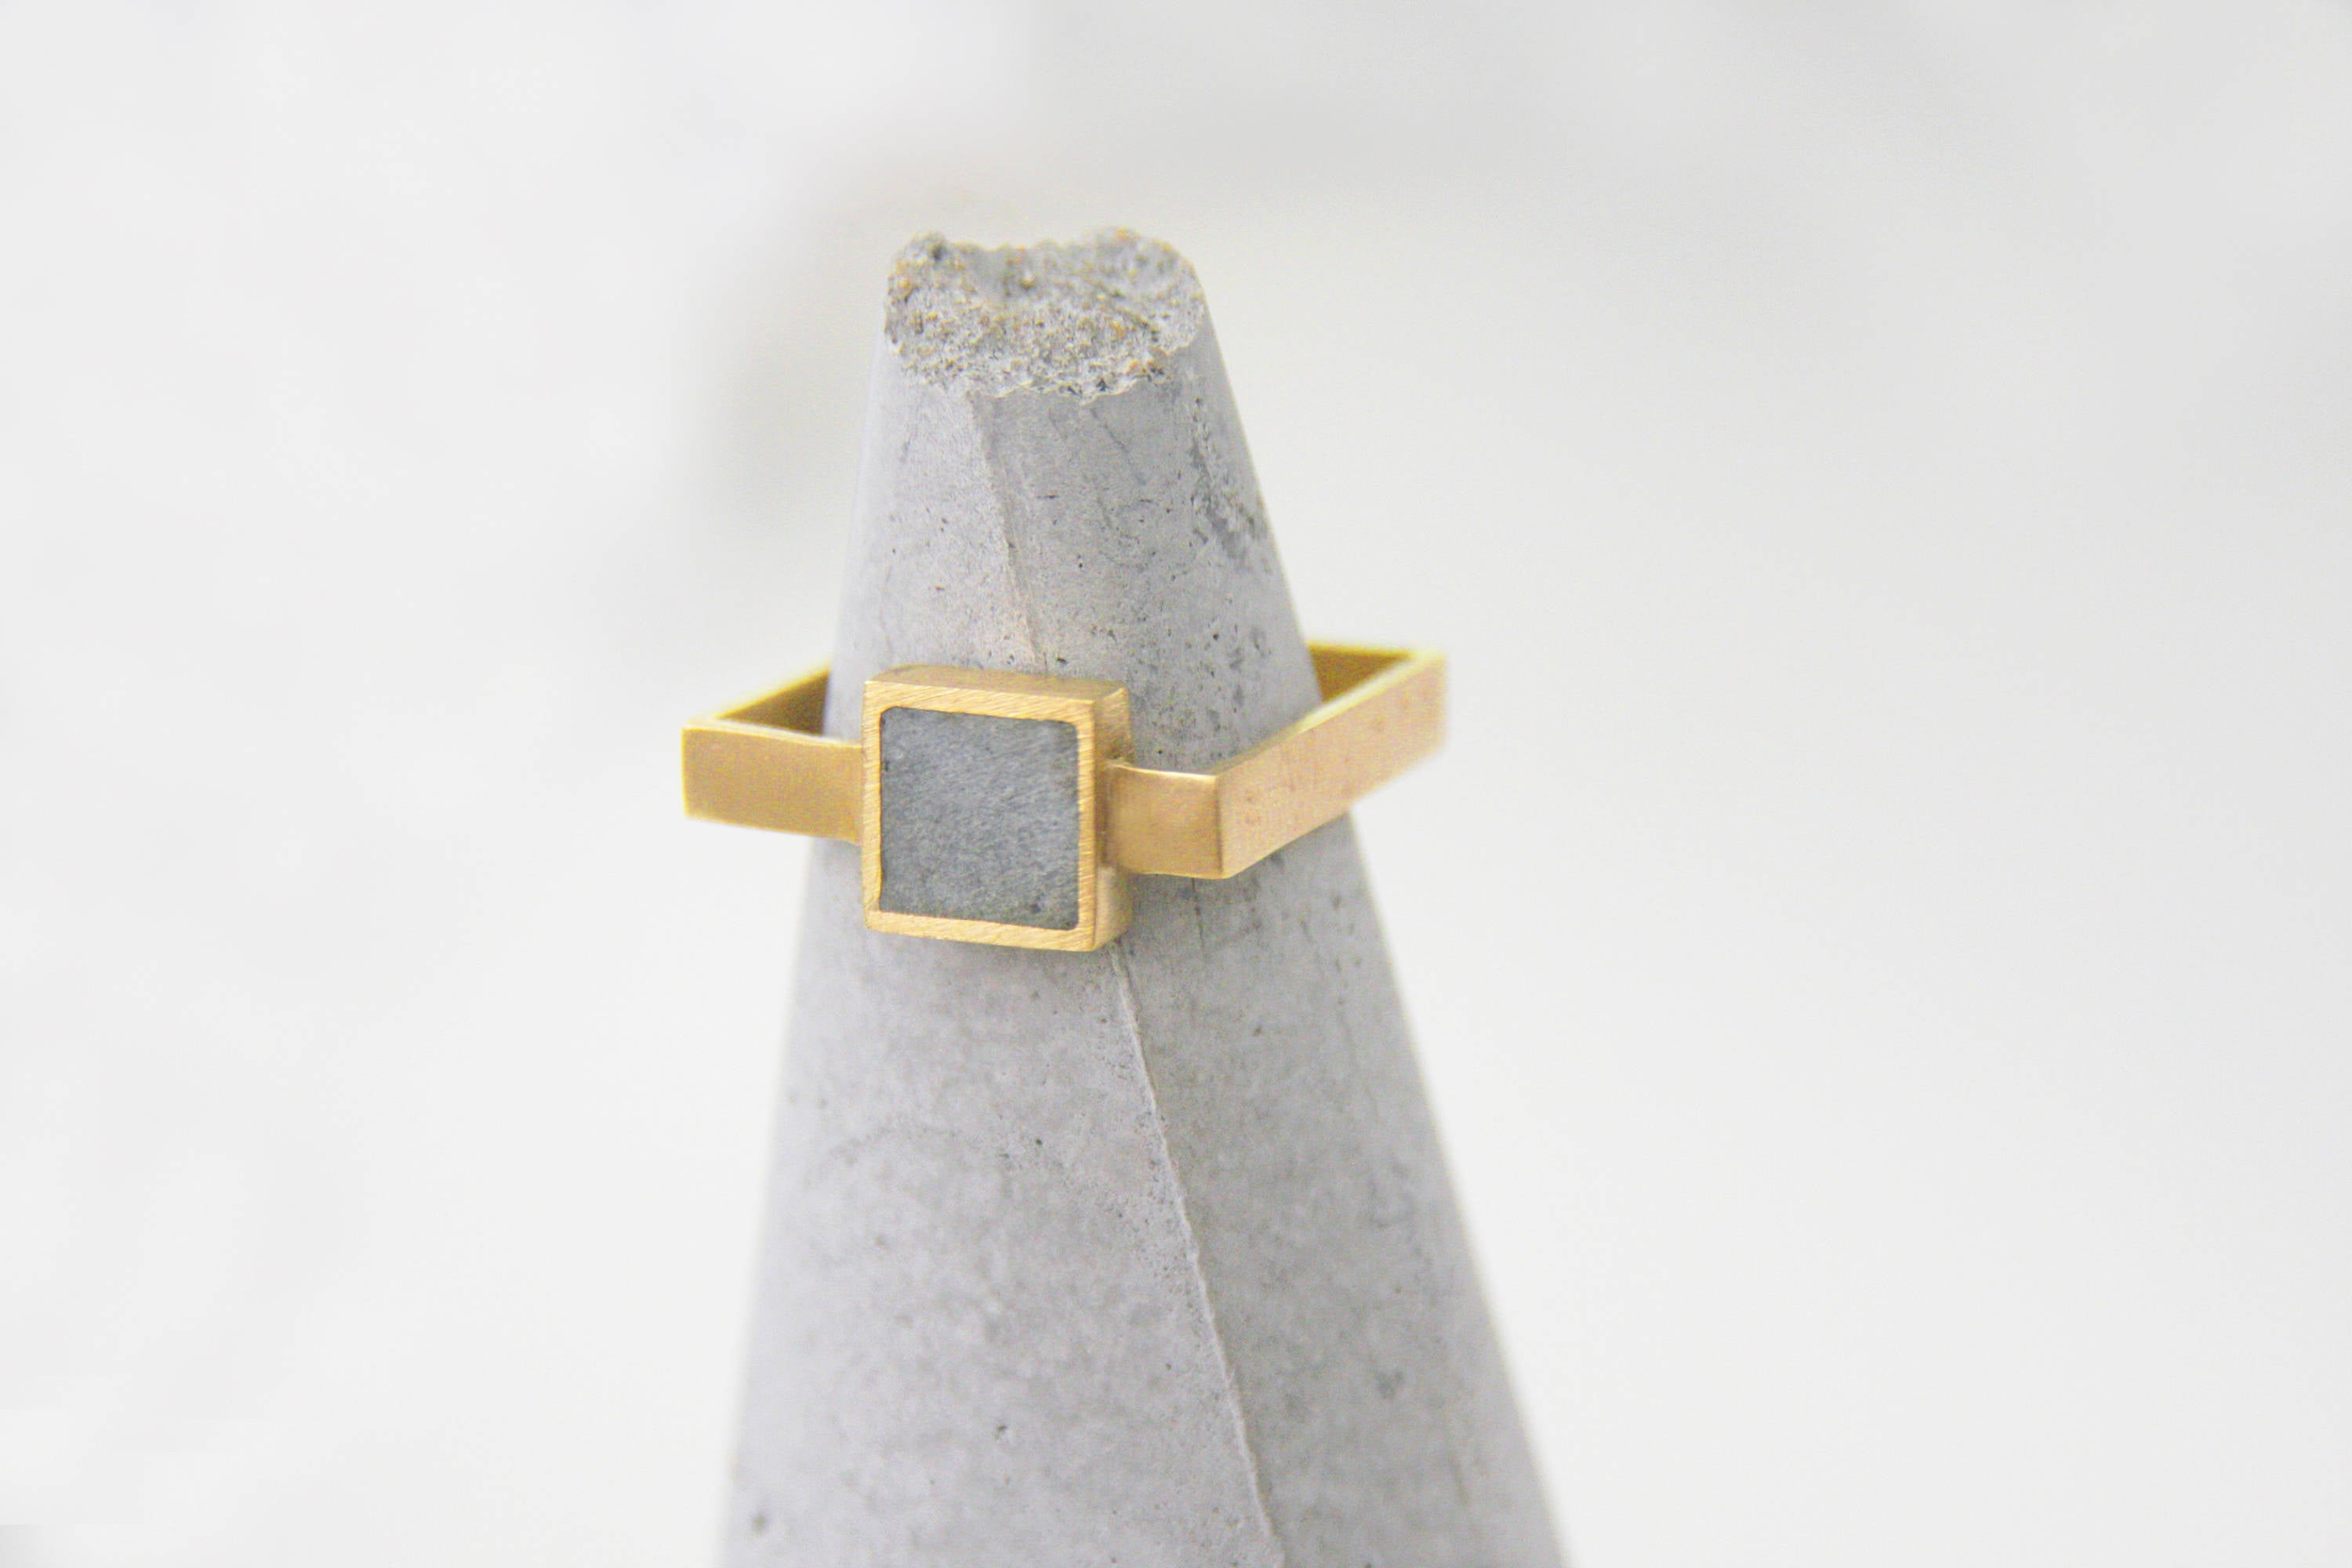 Geometric Concrete Ring, Gold concrete square Ring, Gray Ring, Delicate concrete Ring, modern ring, Minimalist concrete Ring, Frame ring - hs